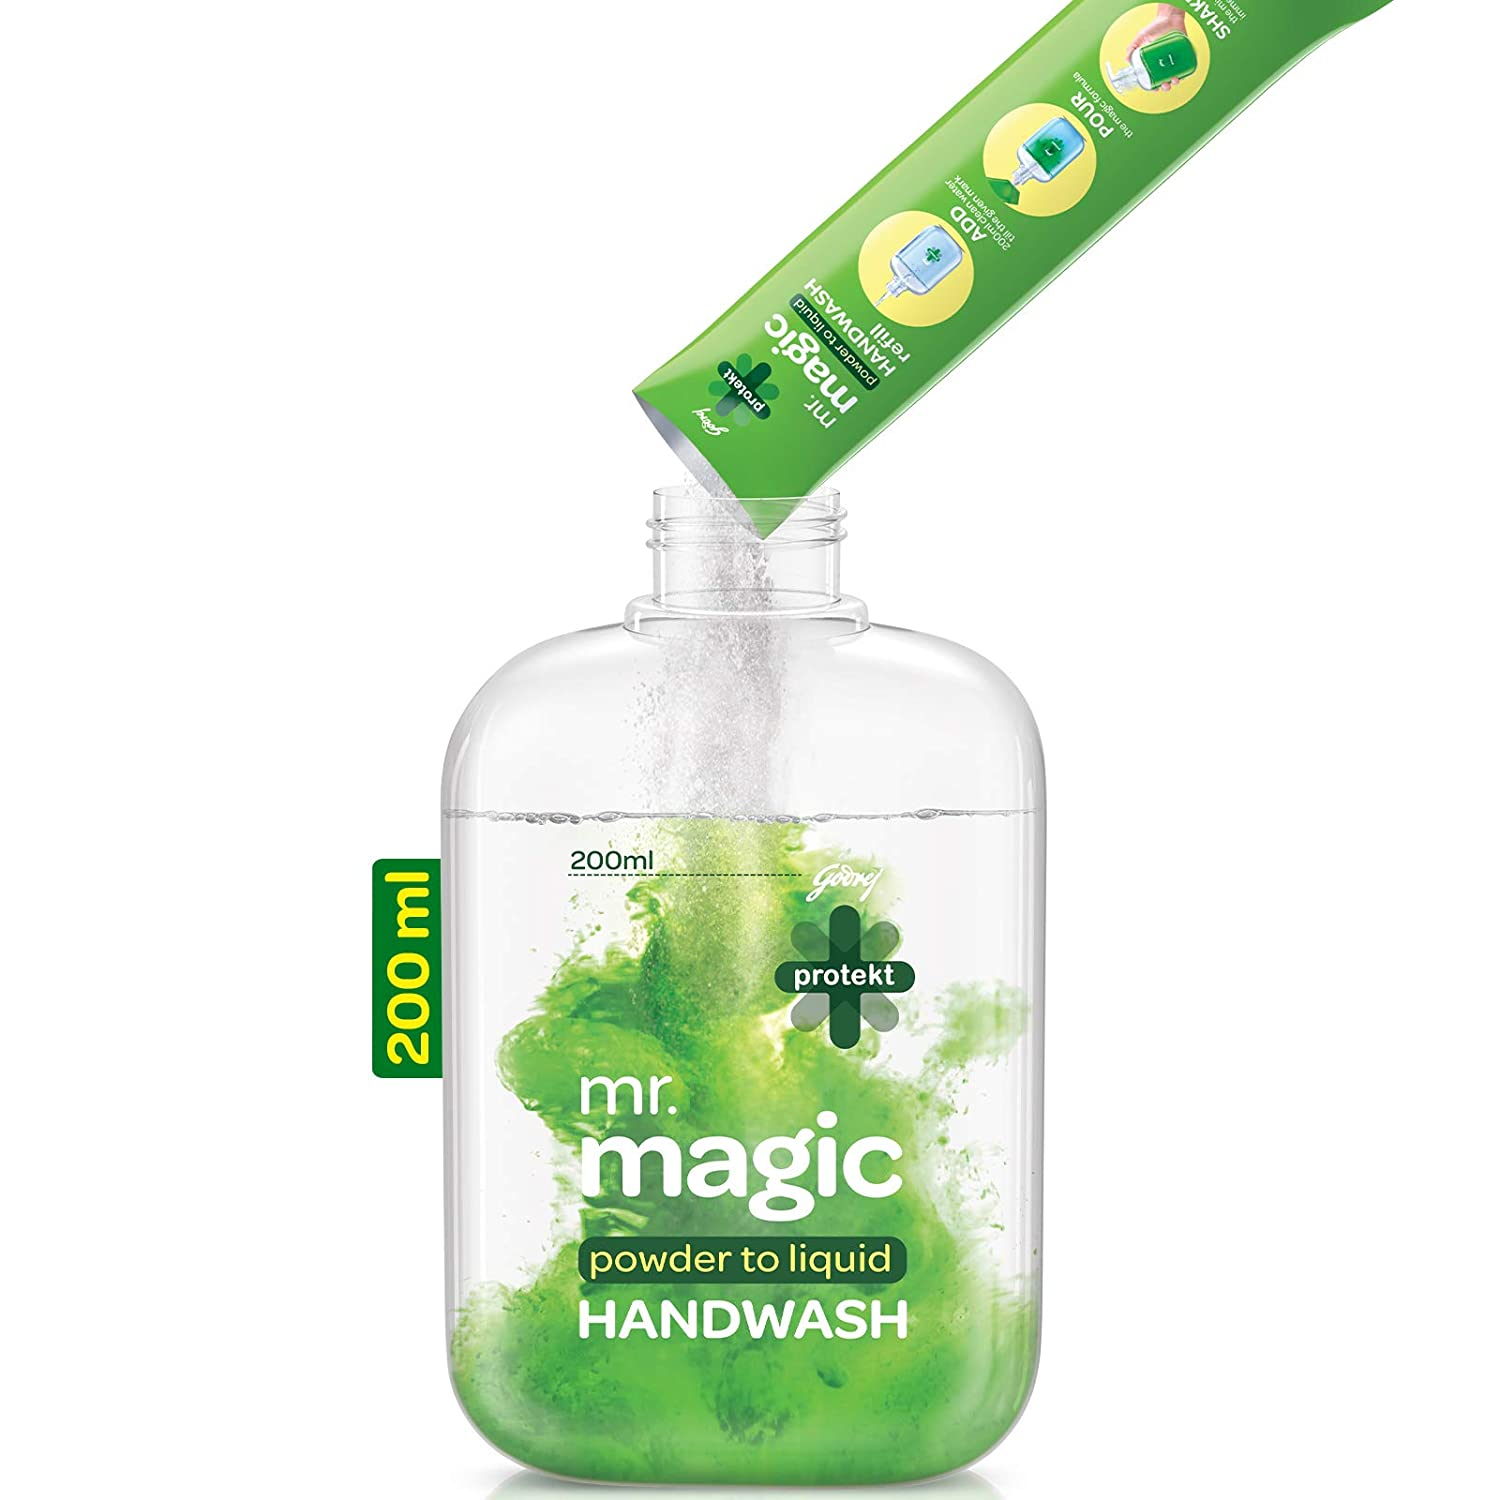 Godrej Protekt Mr. Magic Handwash Powder To Liquid Handwash 9gm COMBI